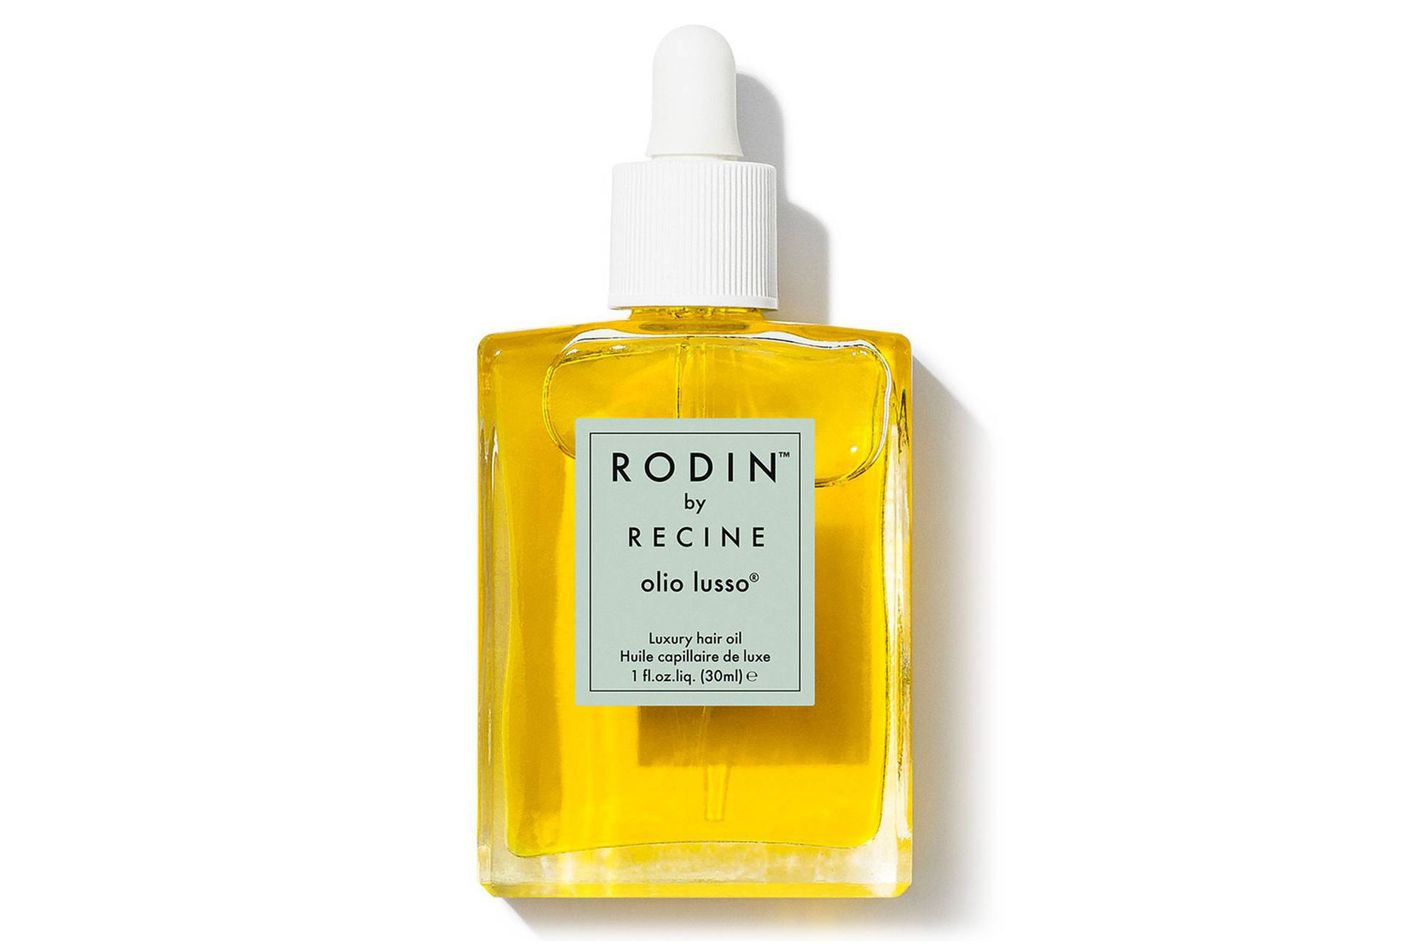 Rodin by Recine Hair Oil